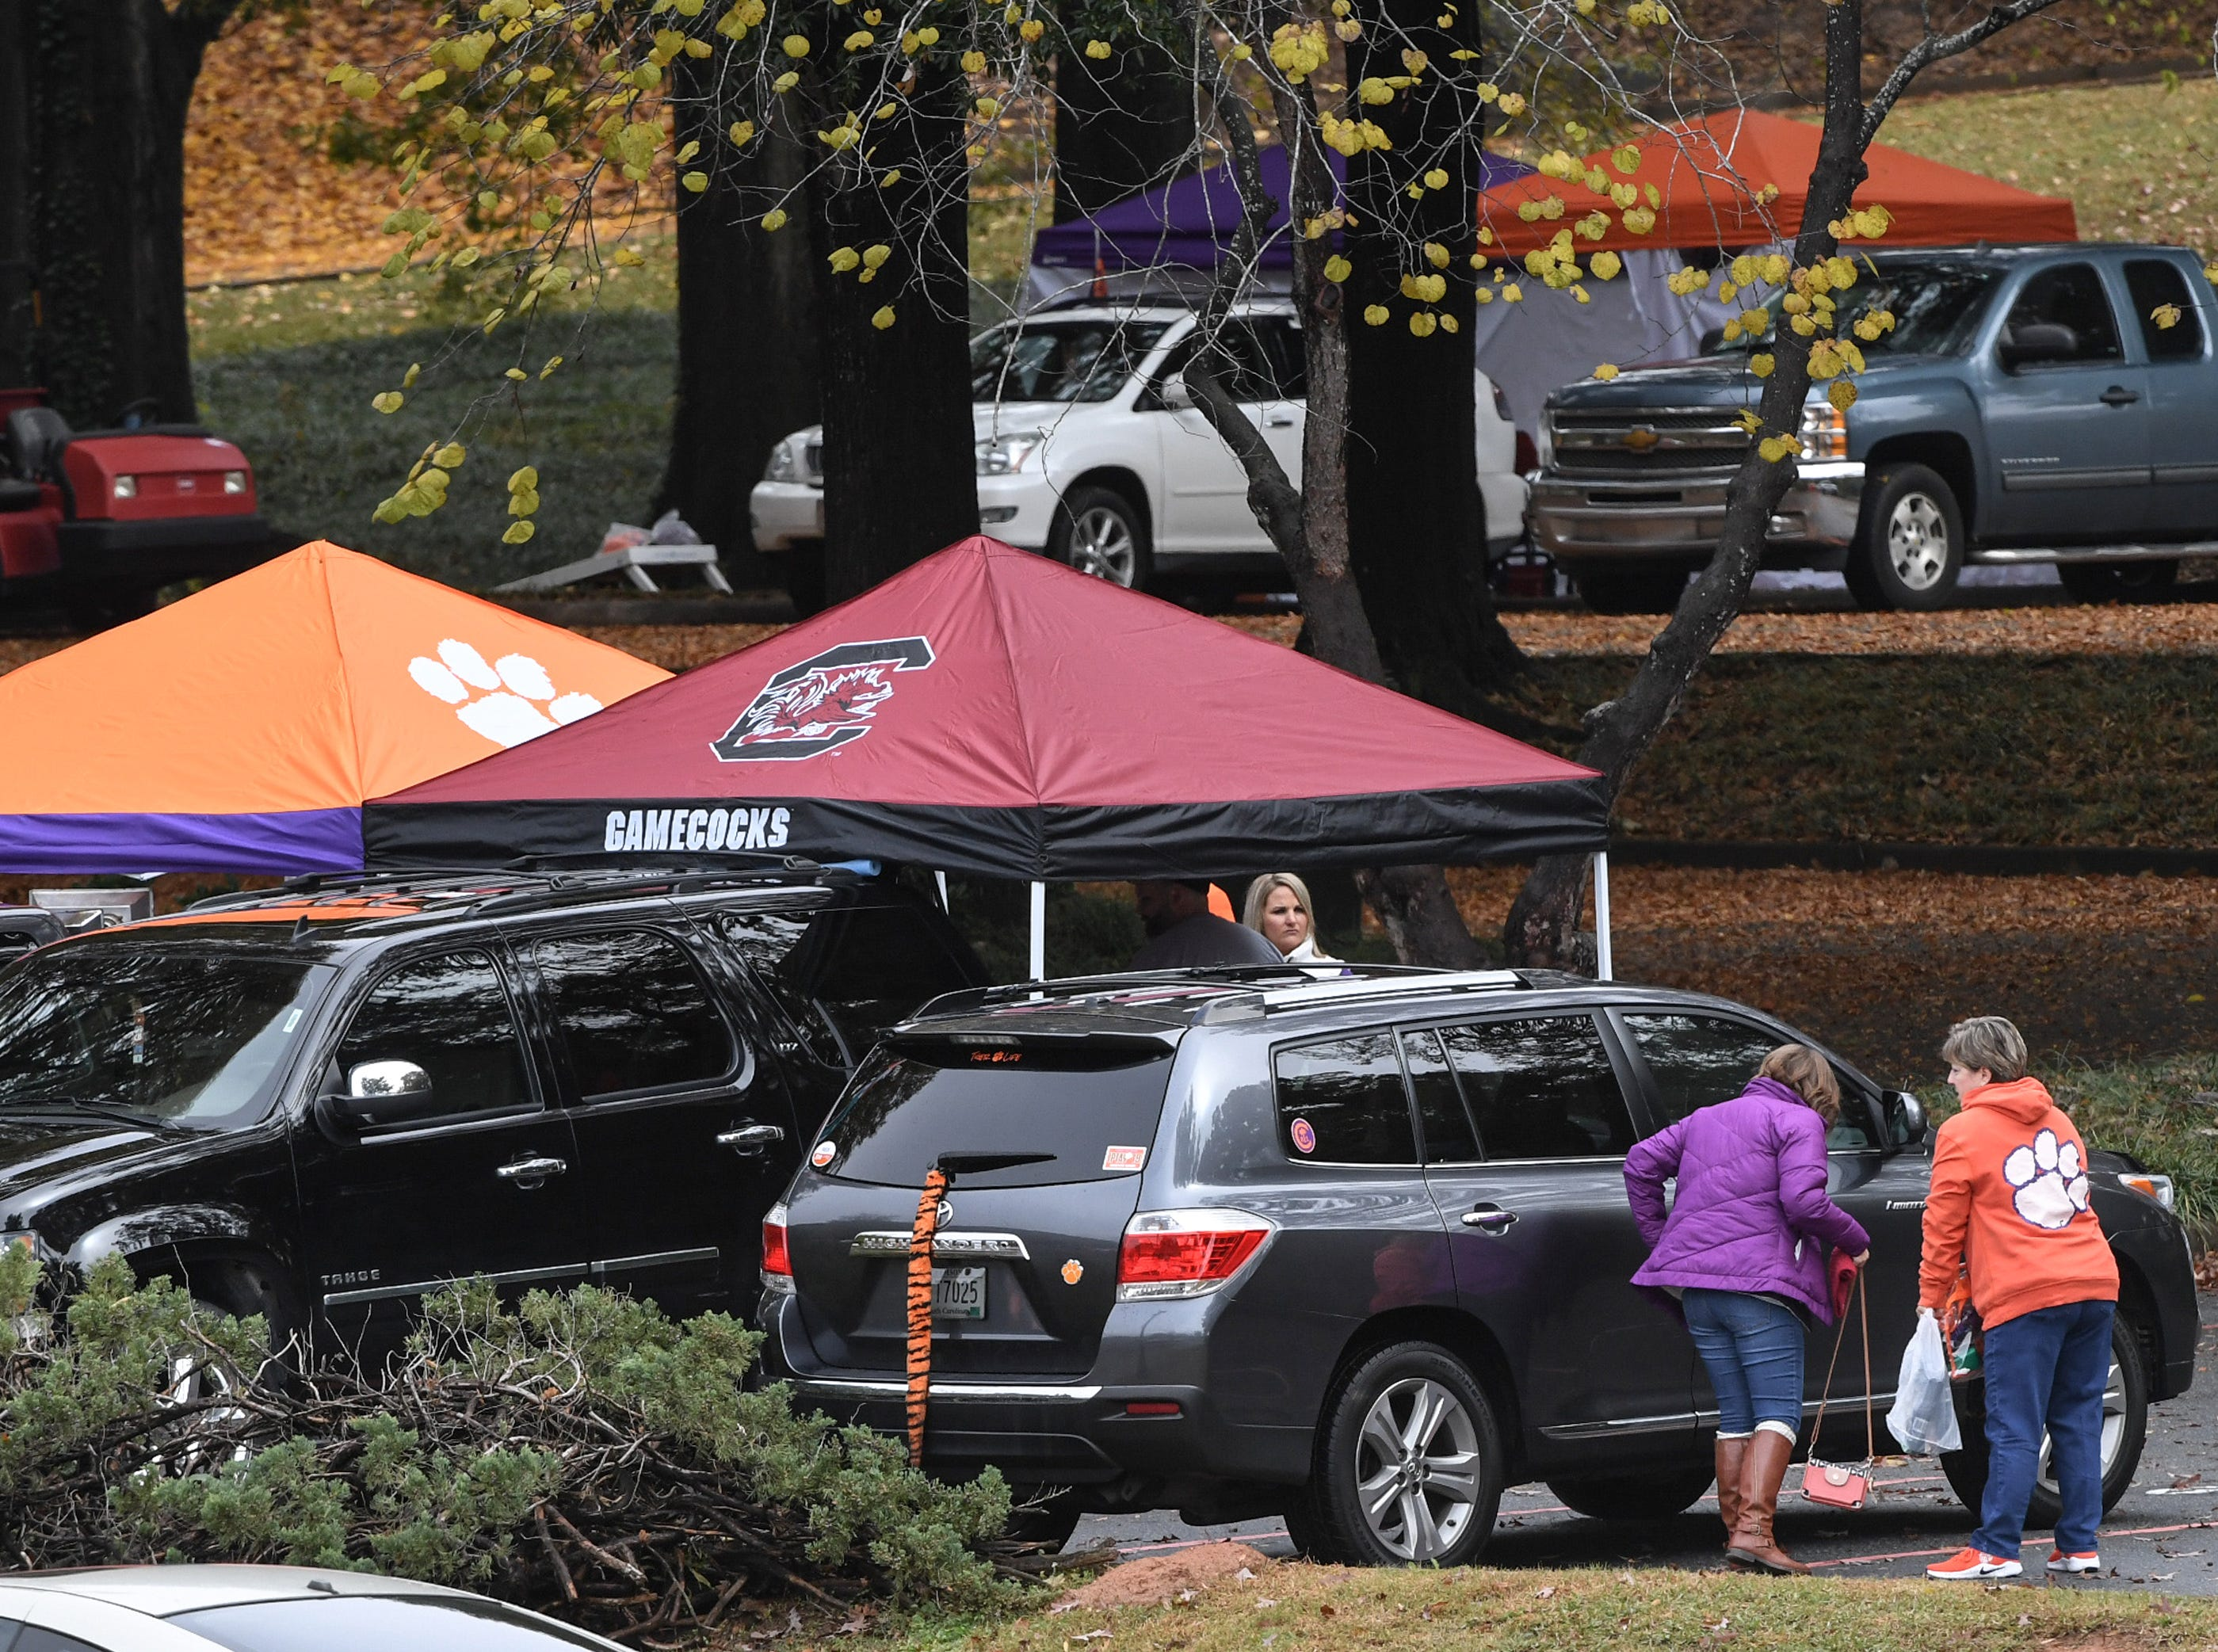 Fans from USC and Clemson tailgate hours before kickoff outside Memorial Stadium, before the rivalry game in Clemson on Saturday, November 24, 2018.